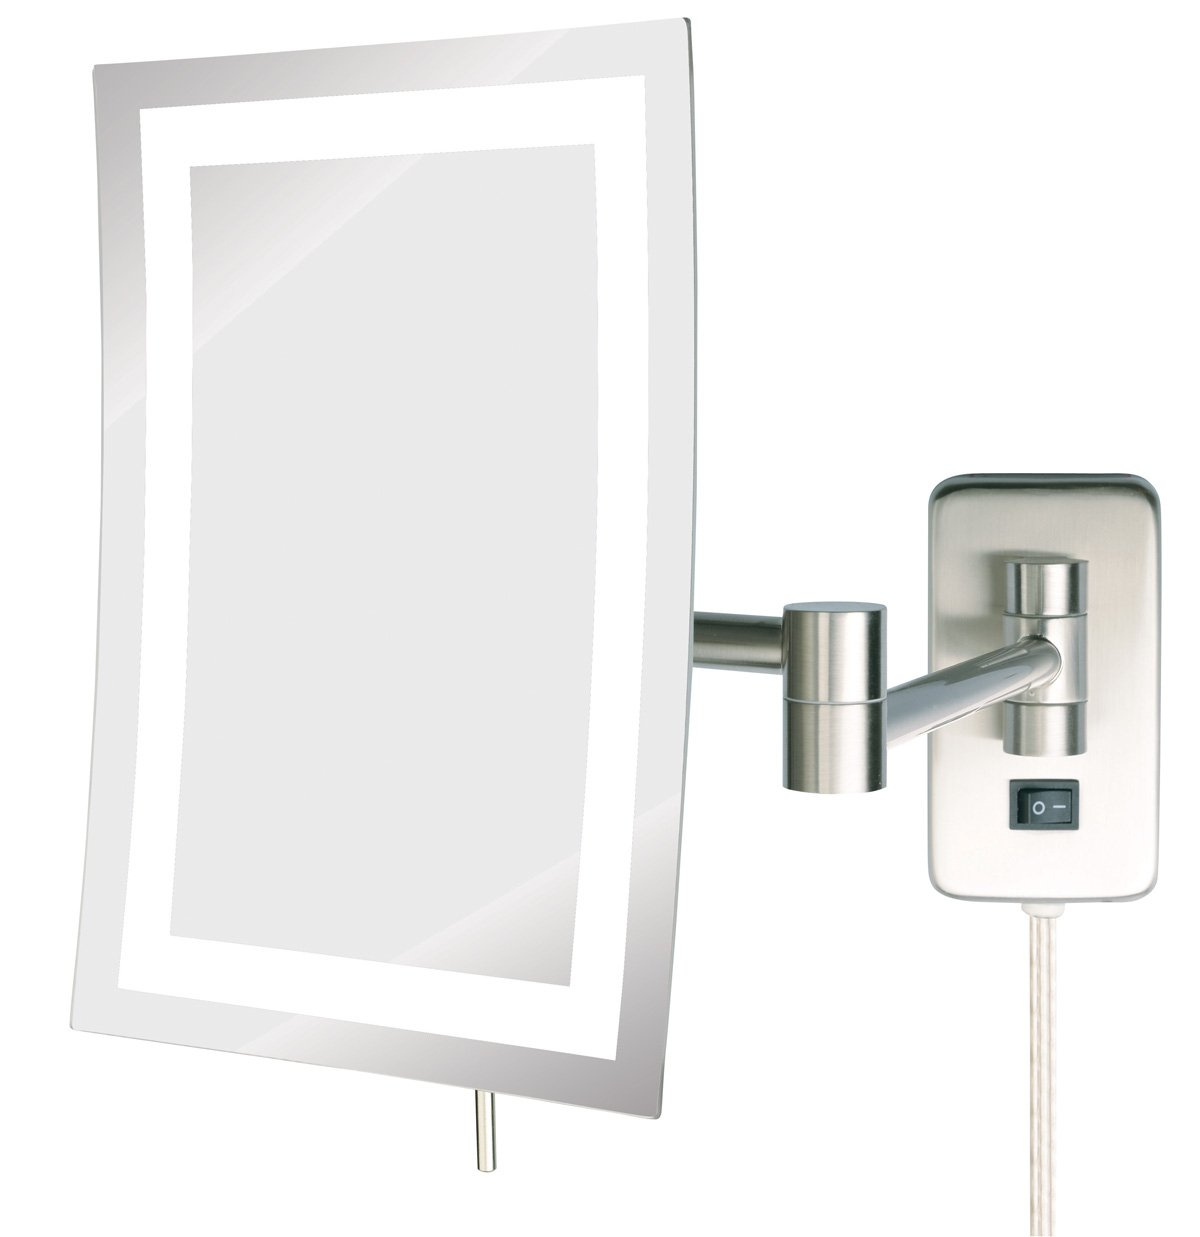 Jerdon JRT710NL 6.5-Inch by 9-Inch LED Lighted Wall Mount Rectangular Makeup Mirror, Nickel Finish by Jerdon